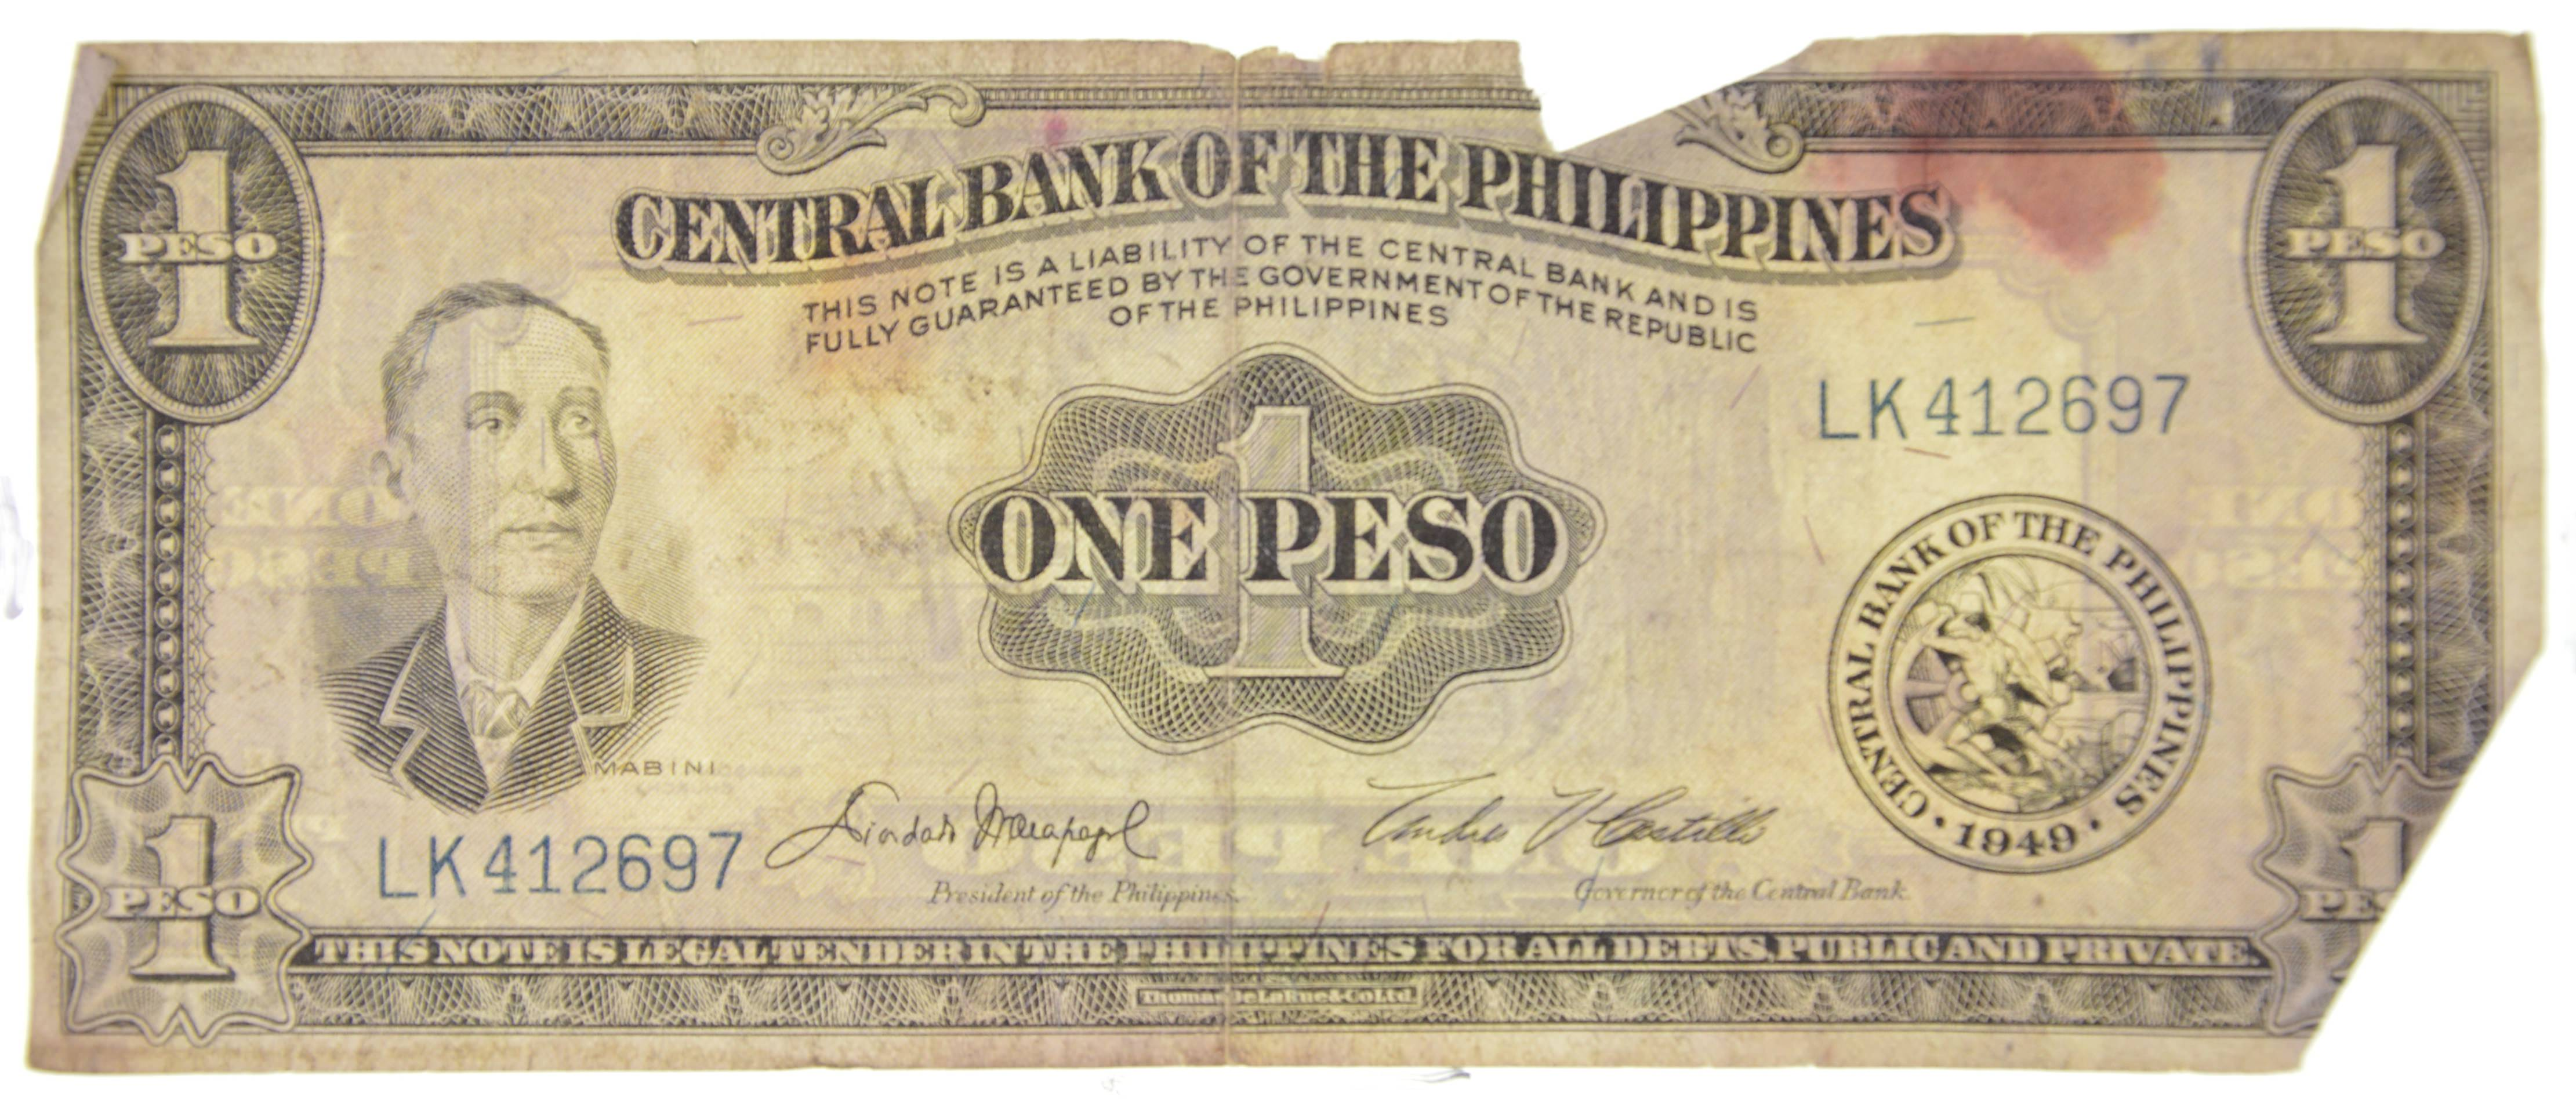 1949 Central Bank Of The Philippines One Peso